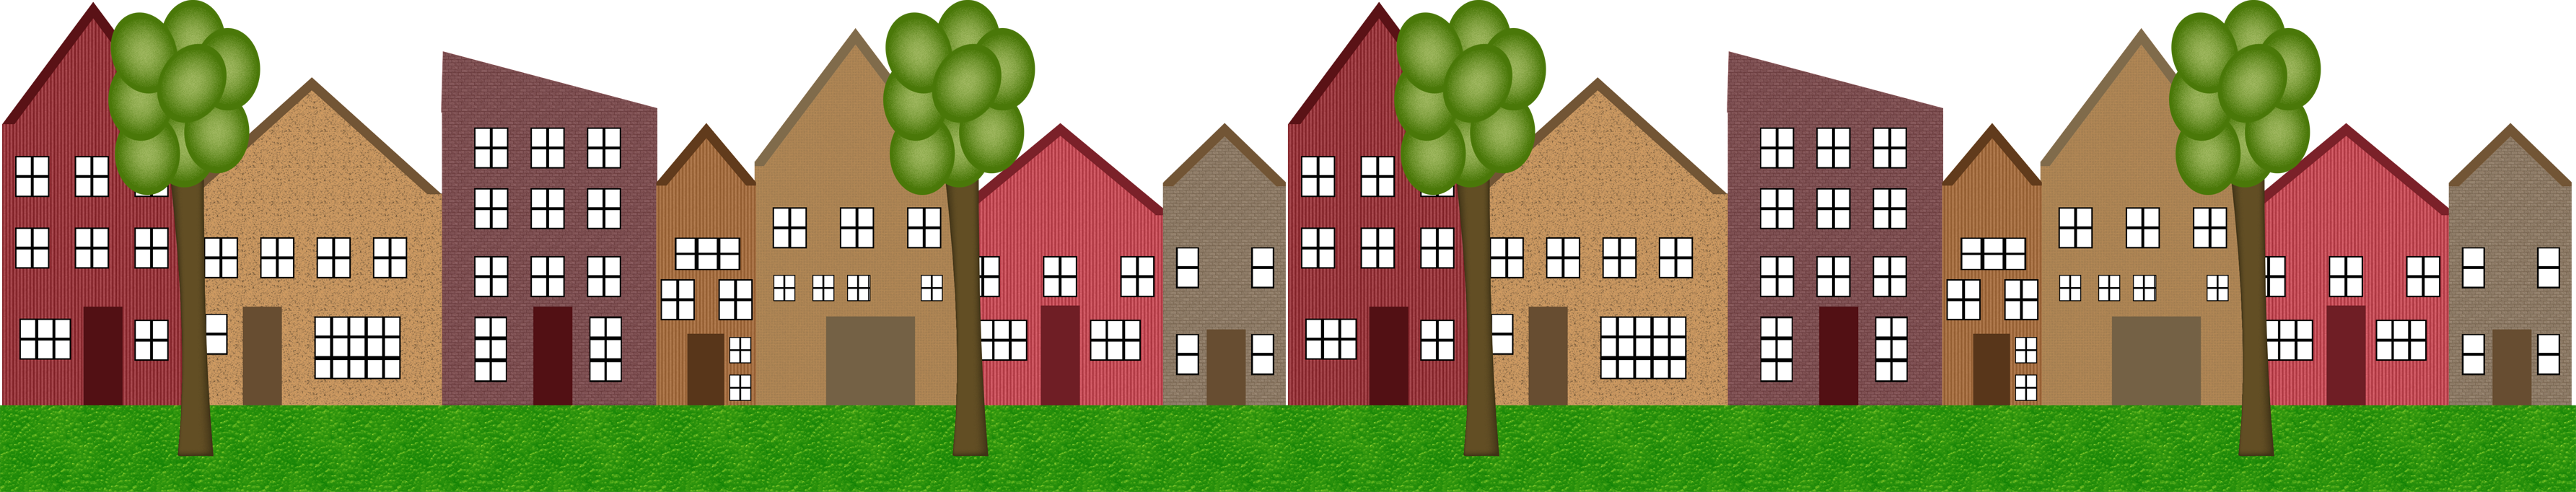 Clip Art Of Homes In A Row Clipart - Clipart Suggest